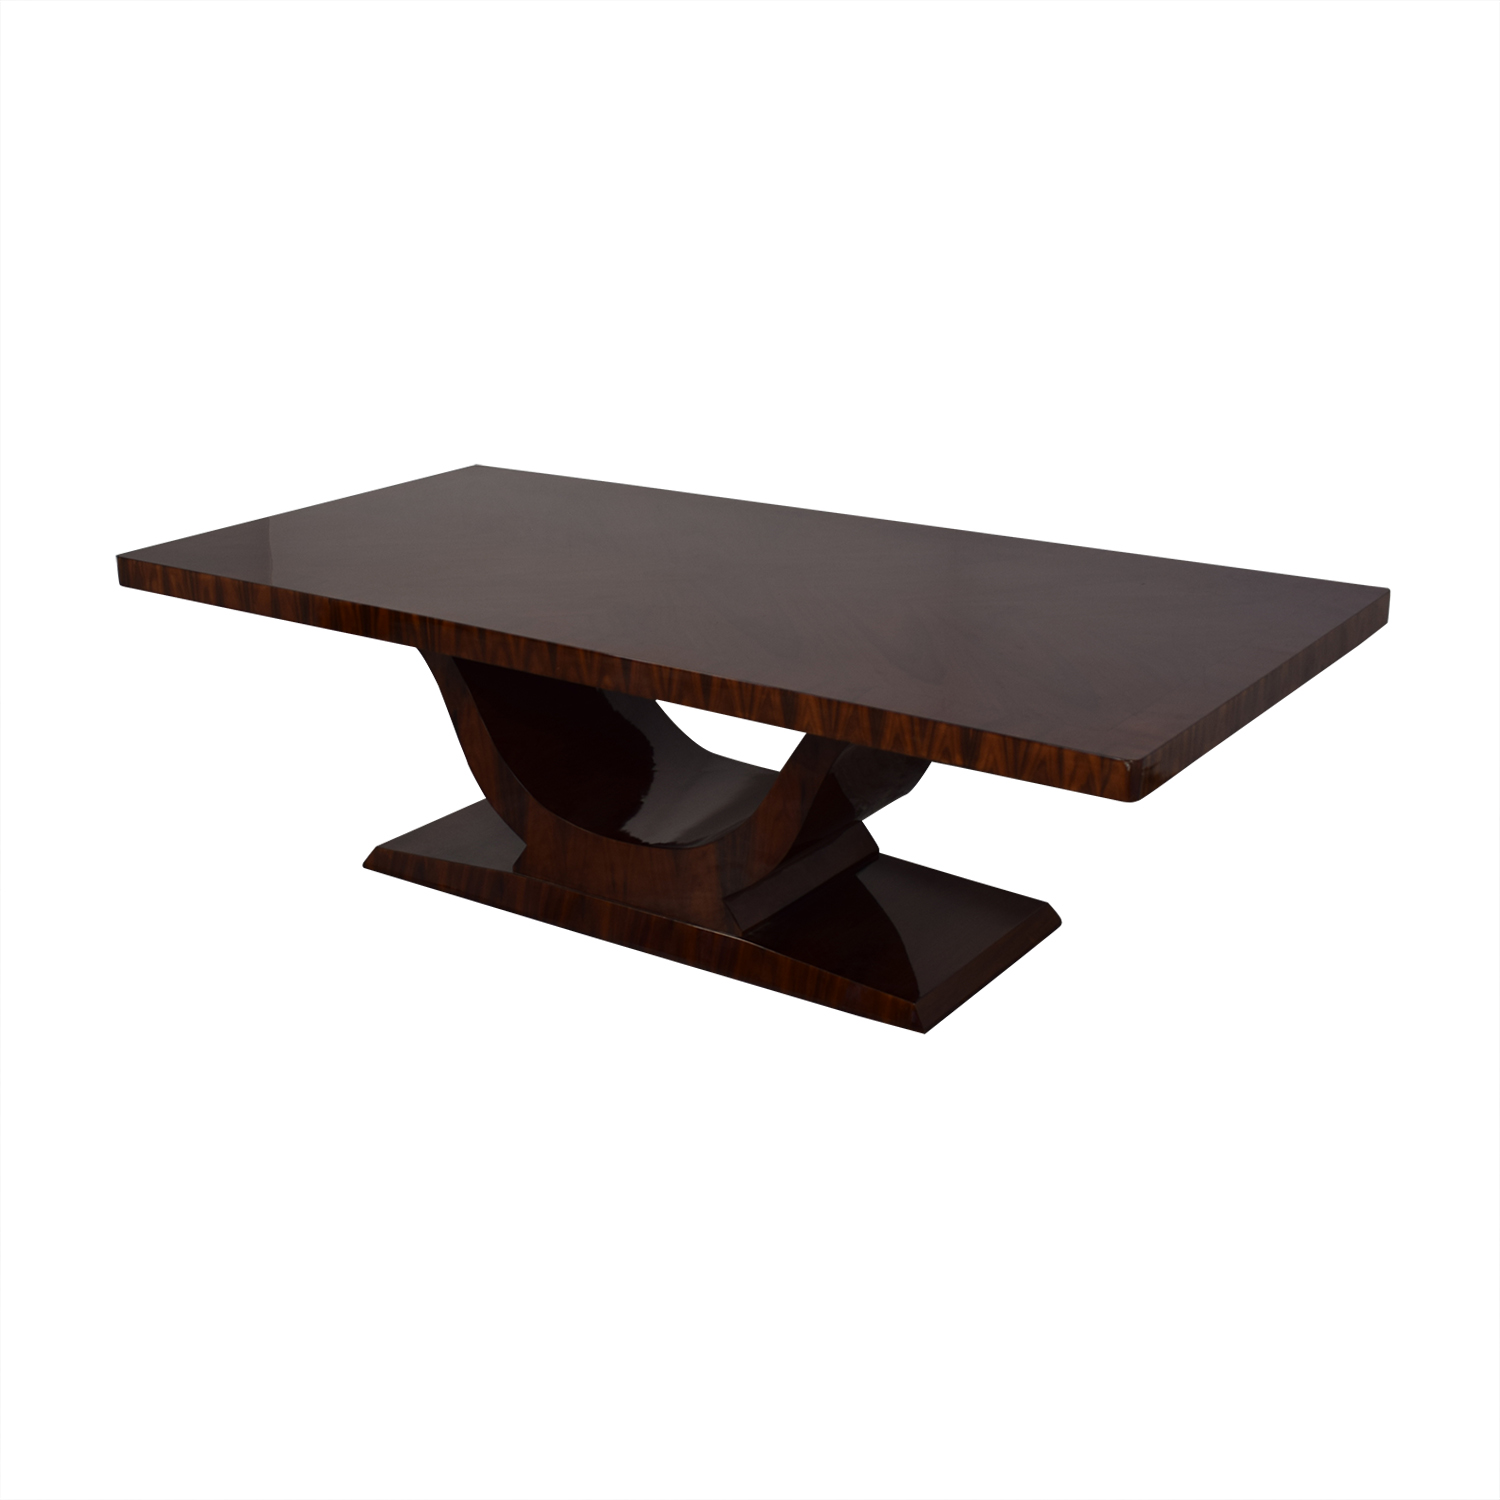 High Gloss Art Deco Style Table for sale